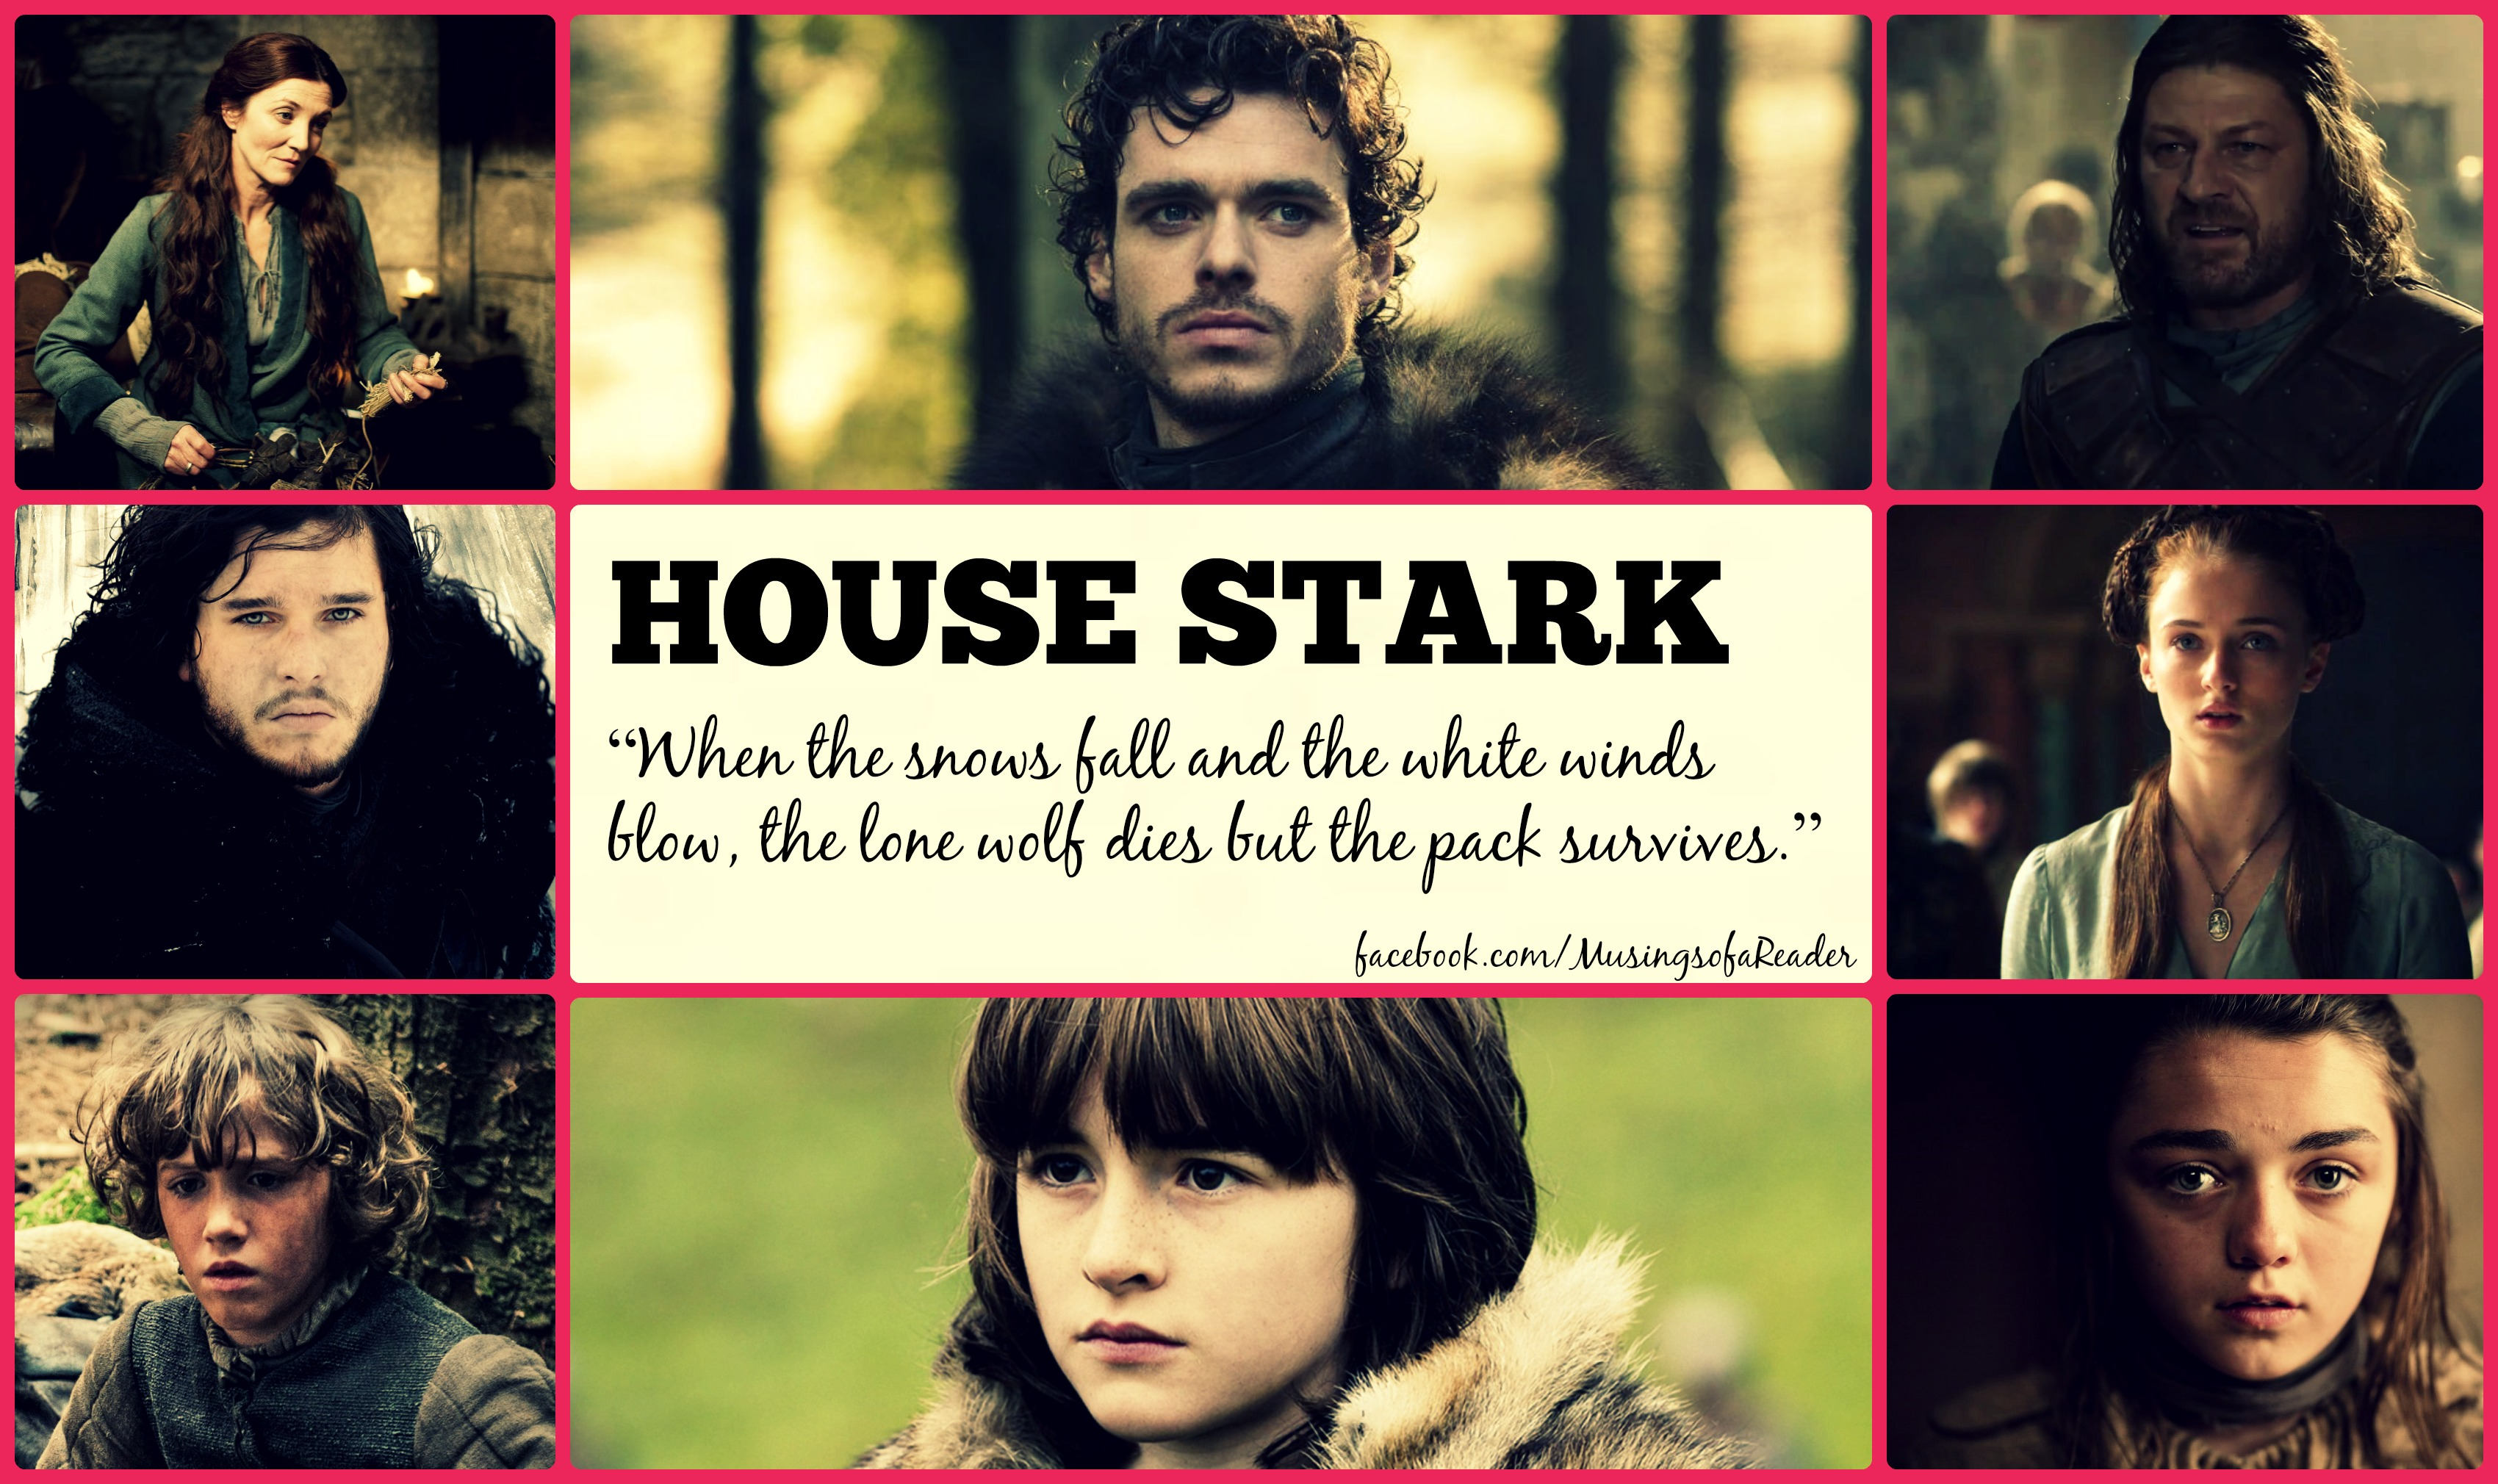 Game of thrones starts with a frightening prologue and then shifts to the castle of winterfell which is where the starks rule the north for king robert